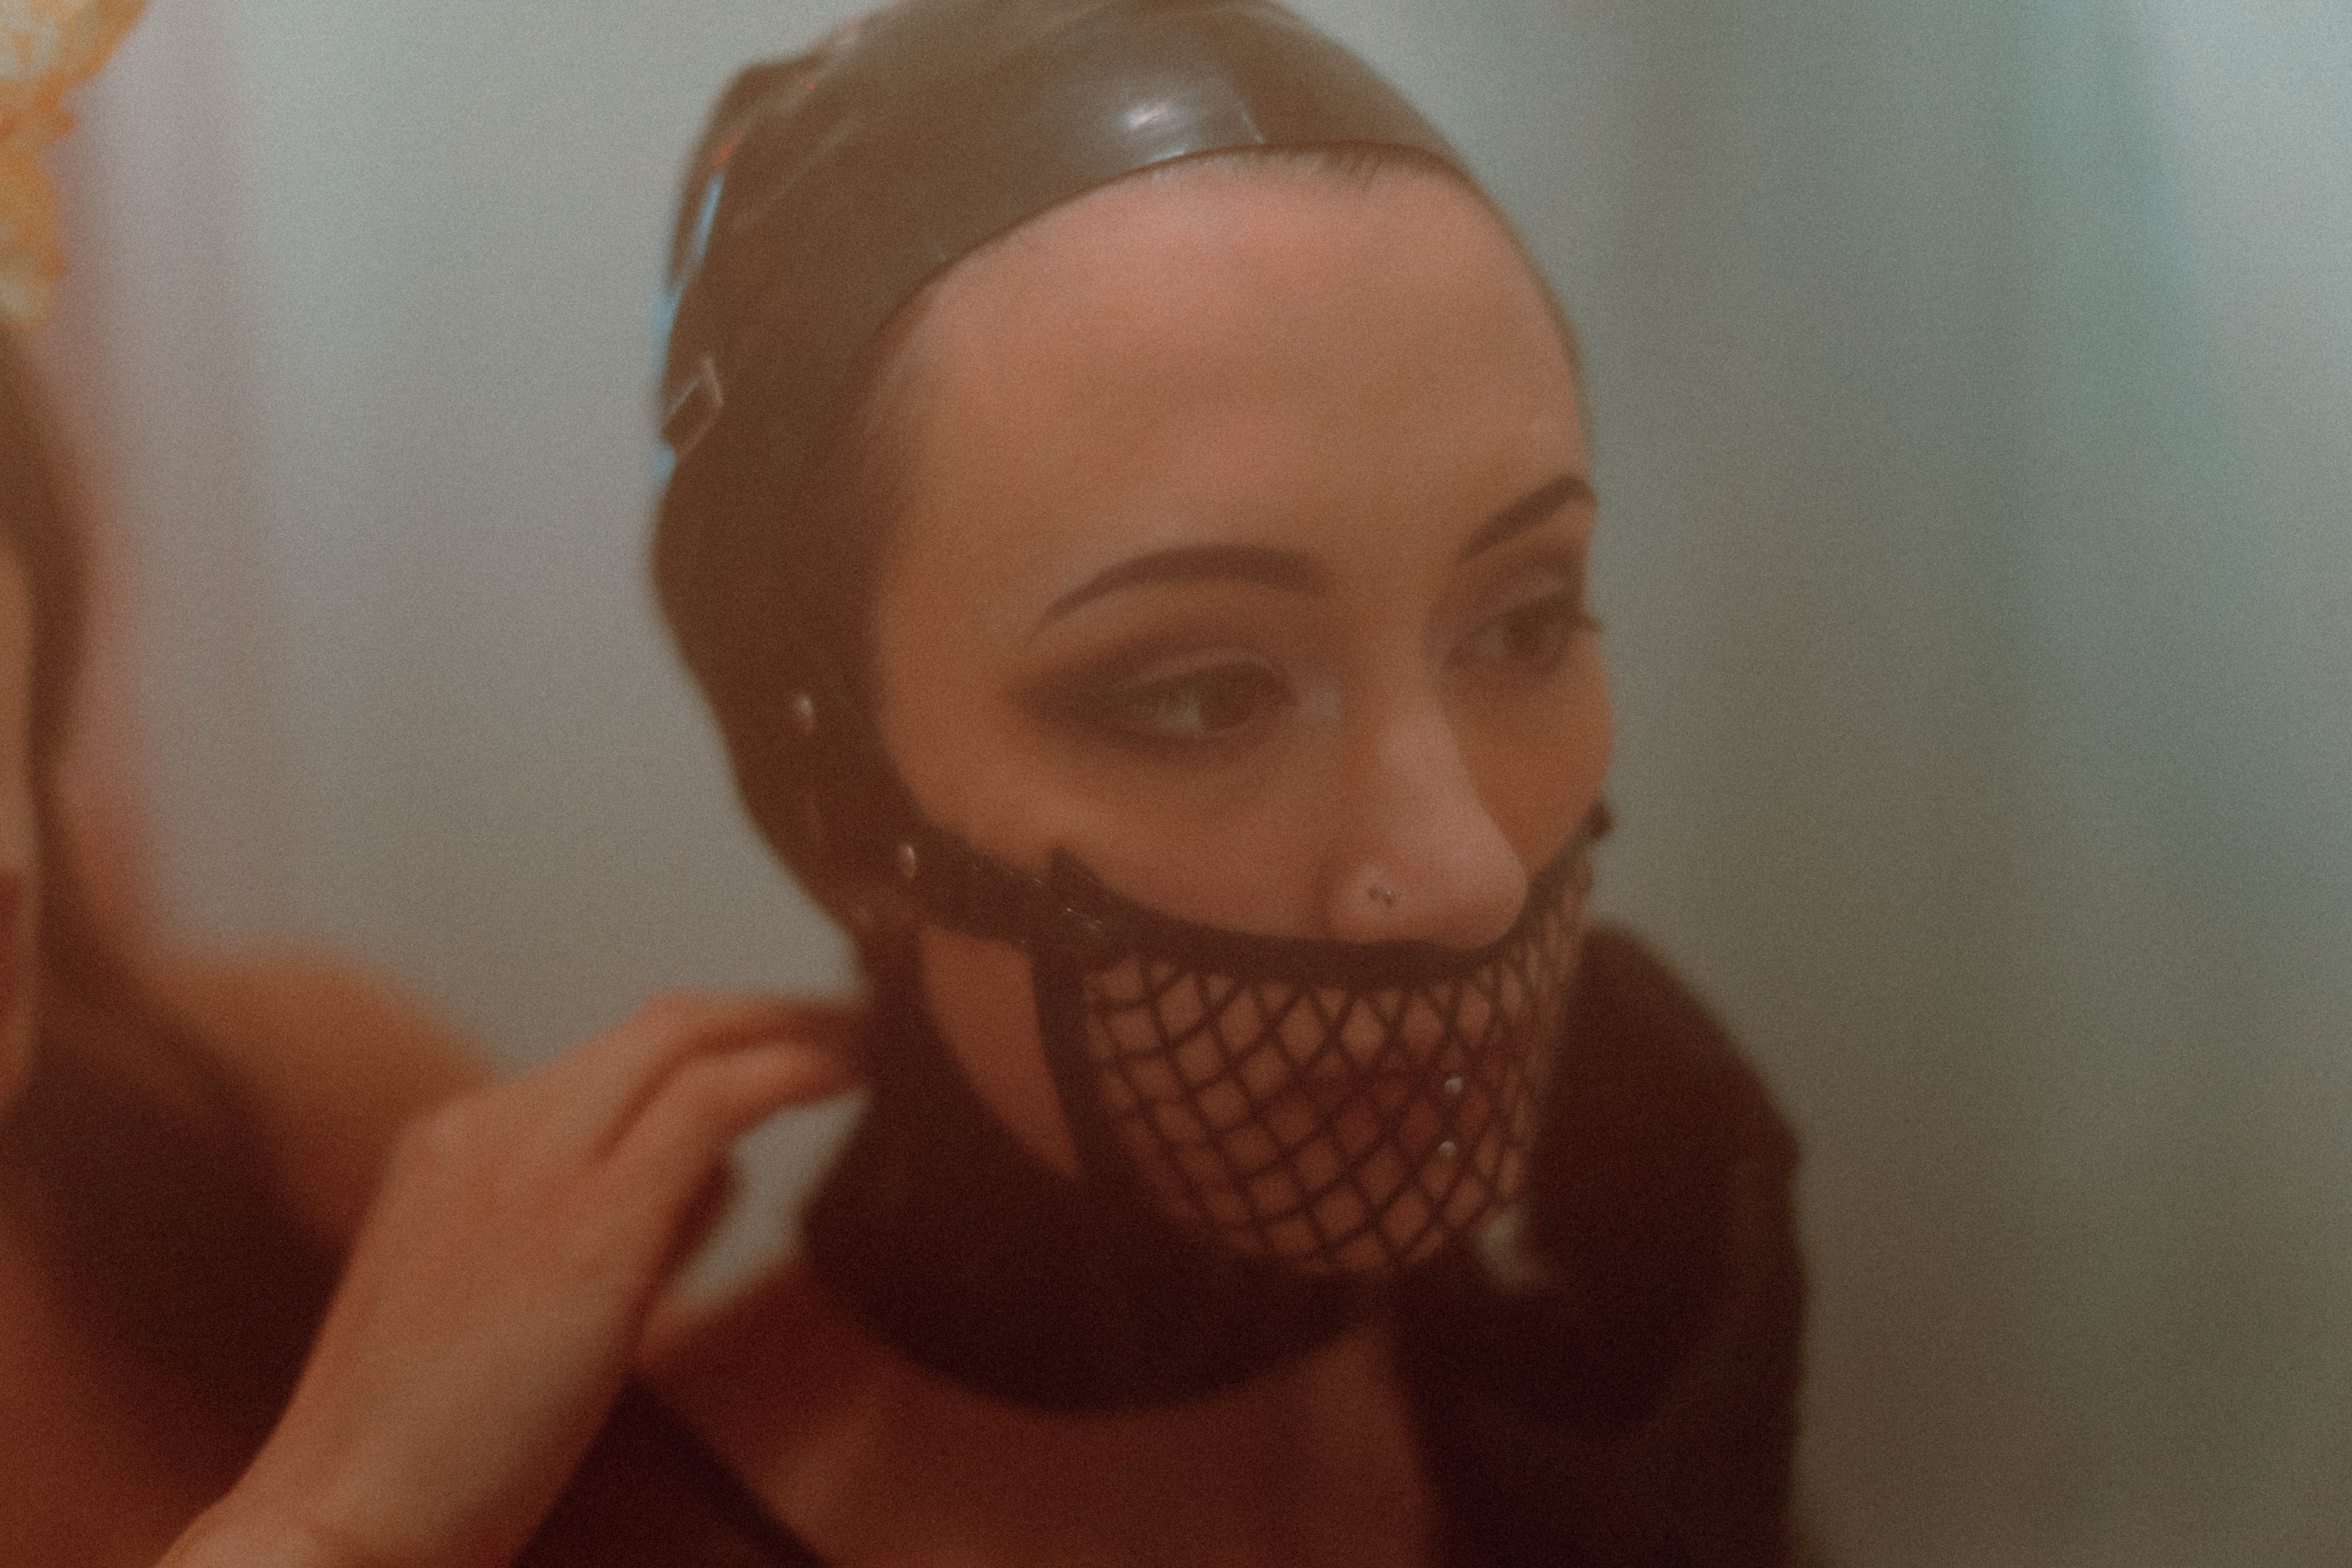 apologise, but, shemale shaved lick penis and facial me, please where can